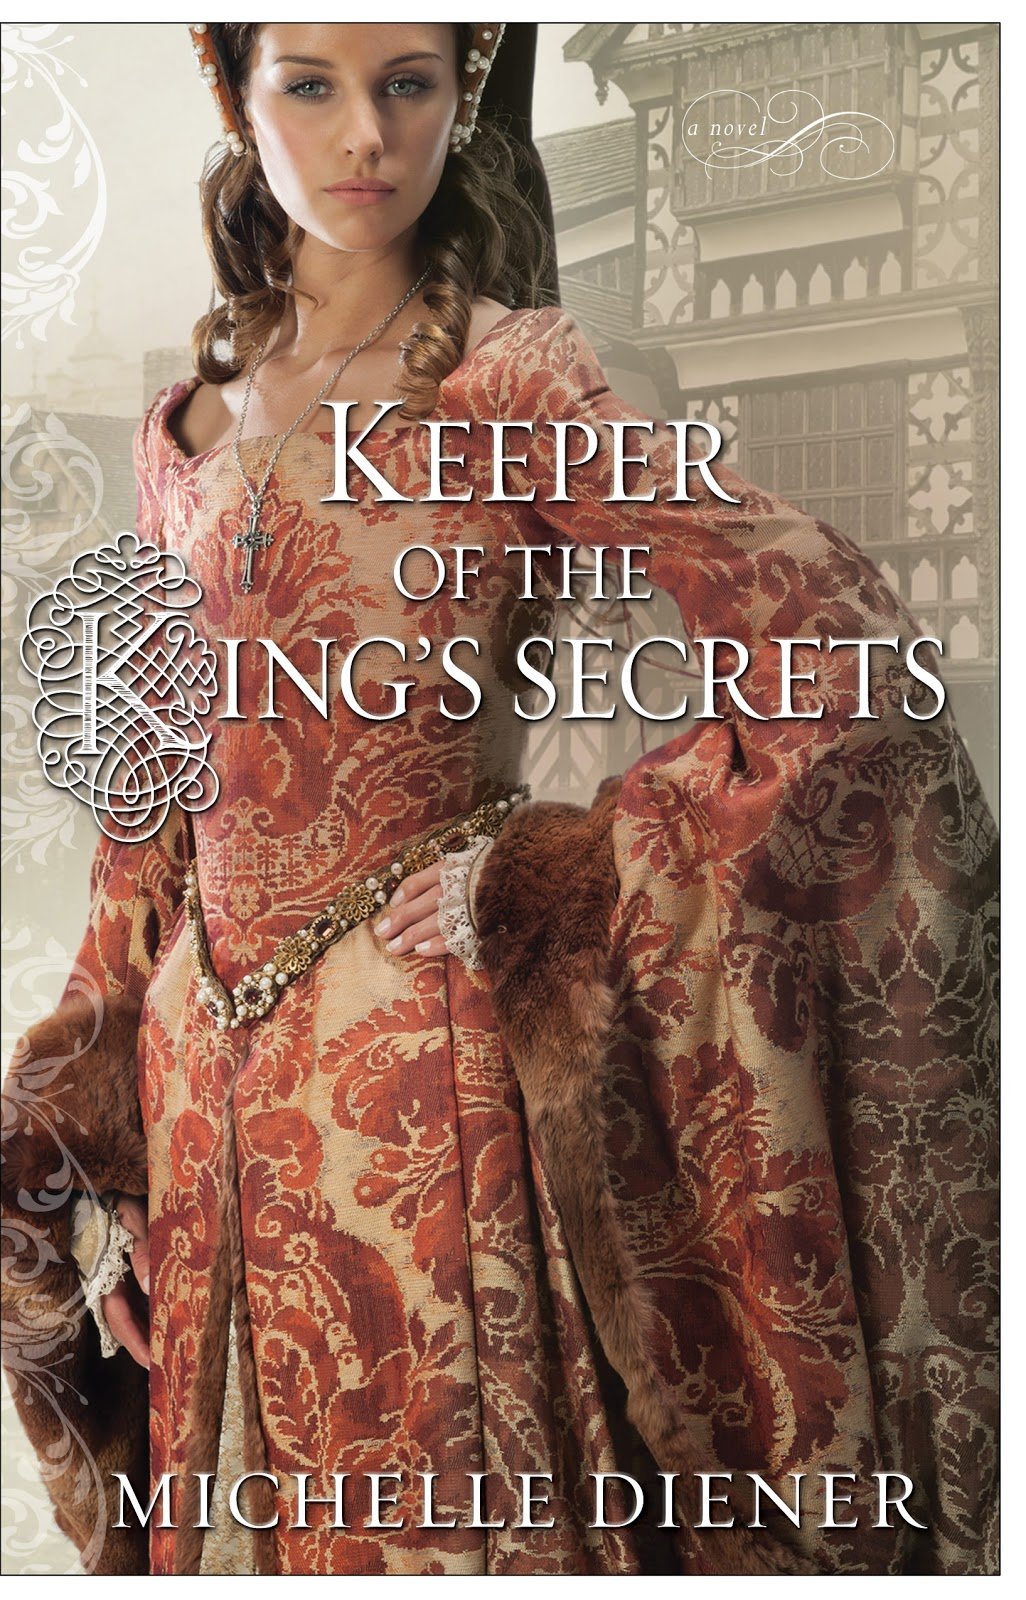 http://3.bp.blogspot.com/-nyklmwynkmg/UGskwfzmGNI/AAAAAAAAAyc/5BJOYXp4q8I/s1600/Keeper+of+the+King\'s+Secrets.jpg